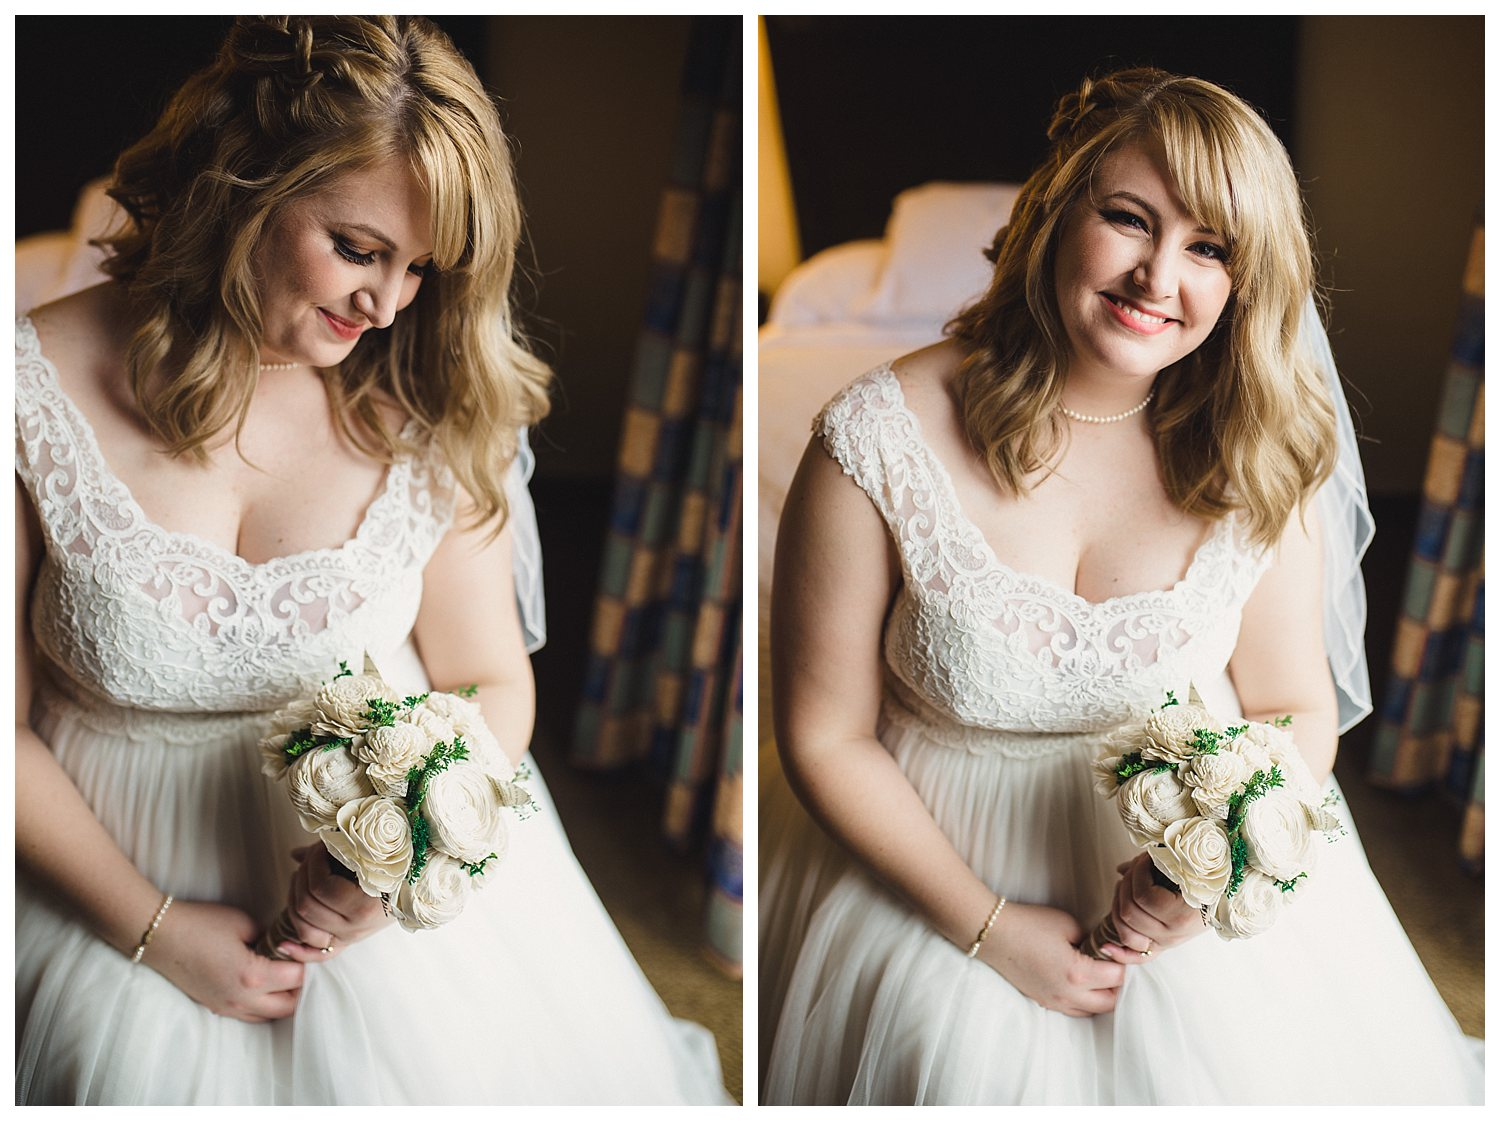 Kelsey_Diane_Photography_Loose_Mansion_Wedding_Photography_Kansas_City_Victor_Lyndsay_0317.jpg